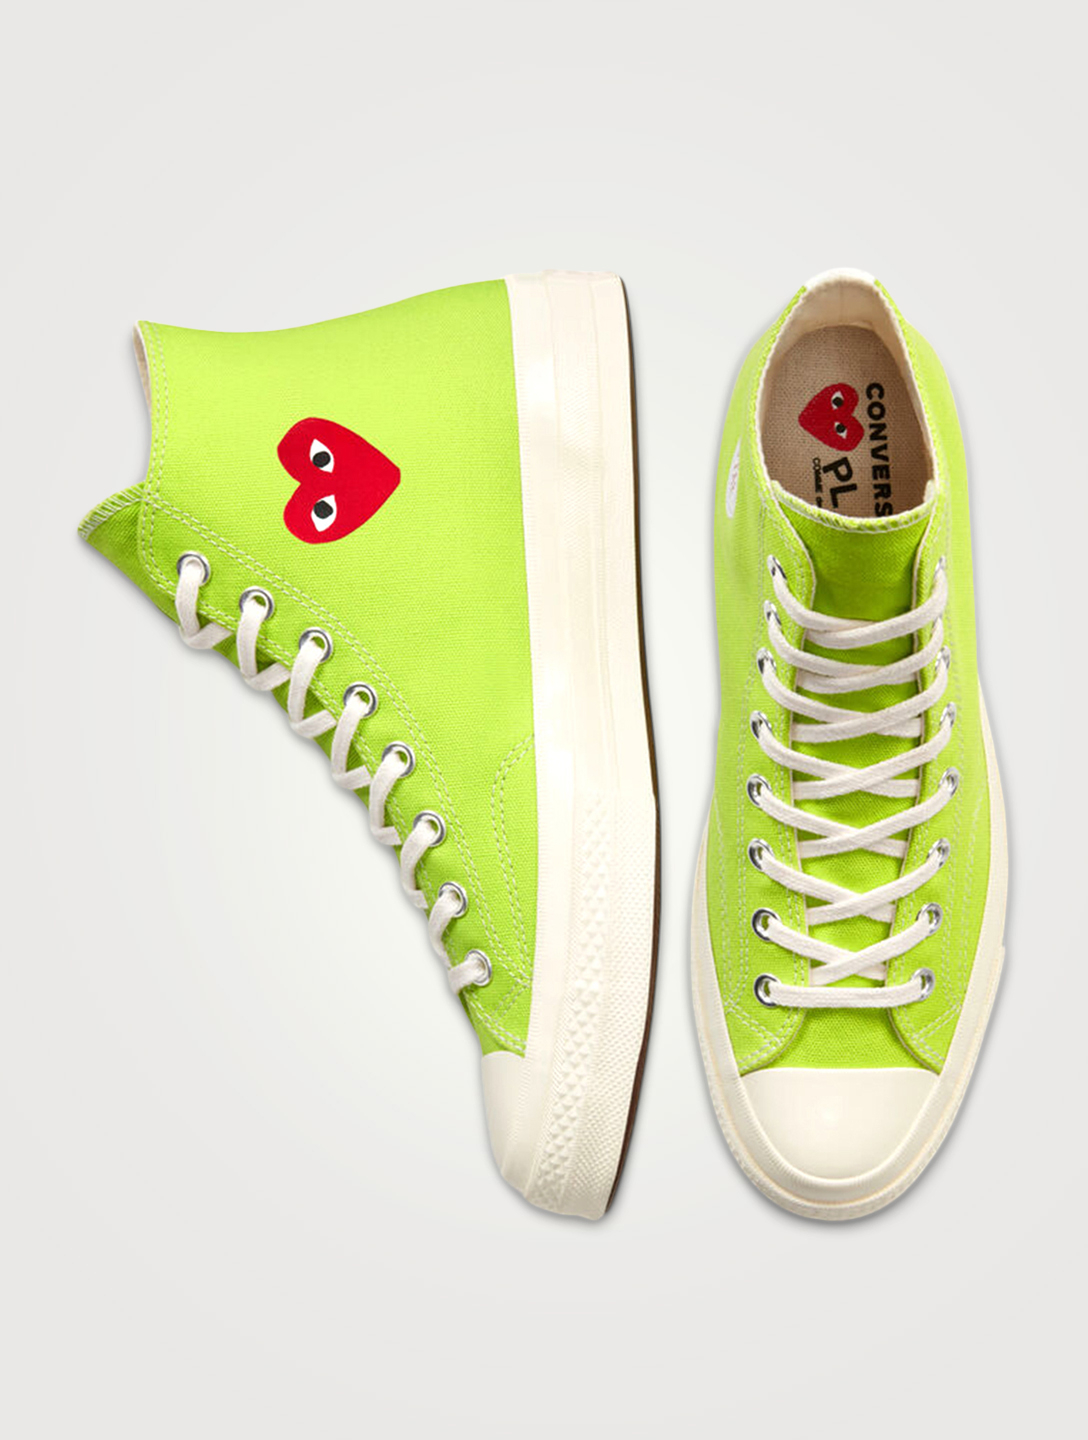 COMME DES GARÇONS PLAY CONVERSE X CDG PLAY Chuck Taylor '70 High-Top Sneakers Men's Green